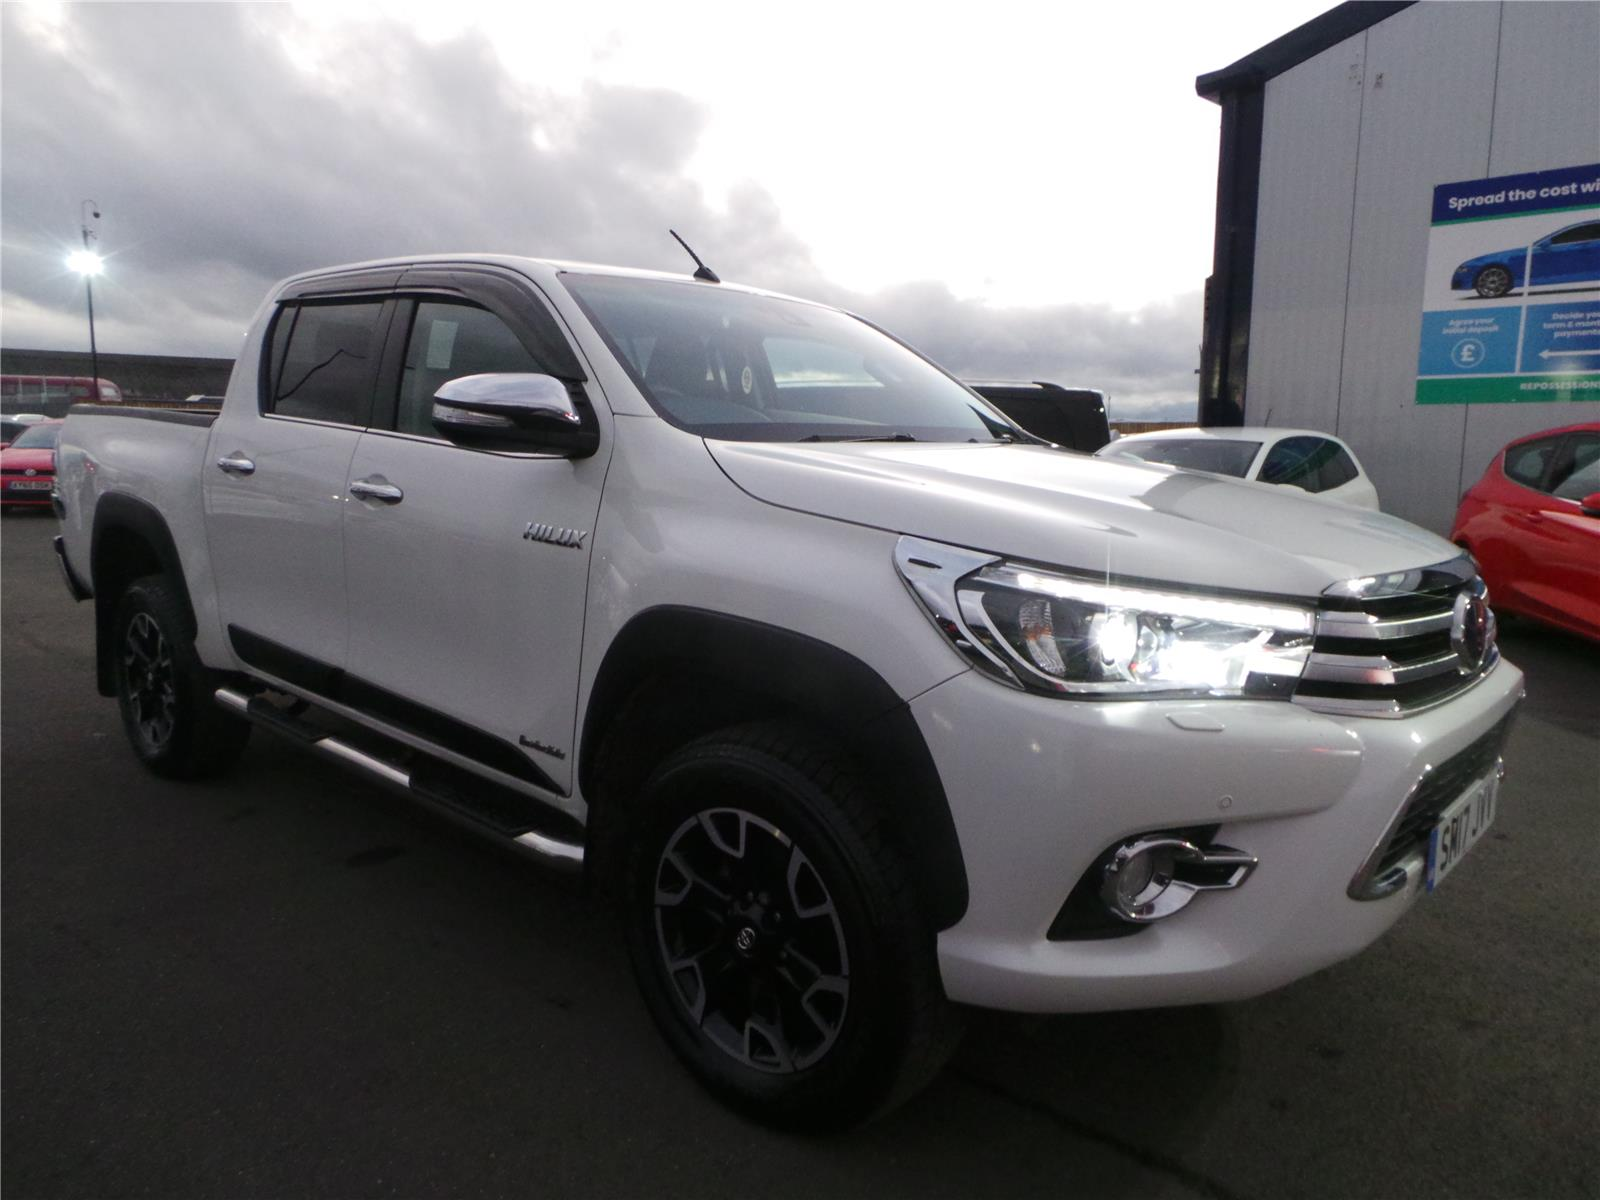 2017 TOYOTA HI-LUX INVINCIBLE X 4WD D-4D DCB 2393 DIESEL MANUAL 6 Speed PICK UP